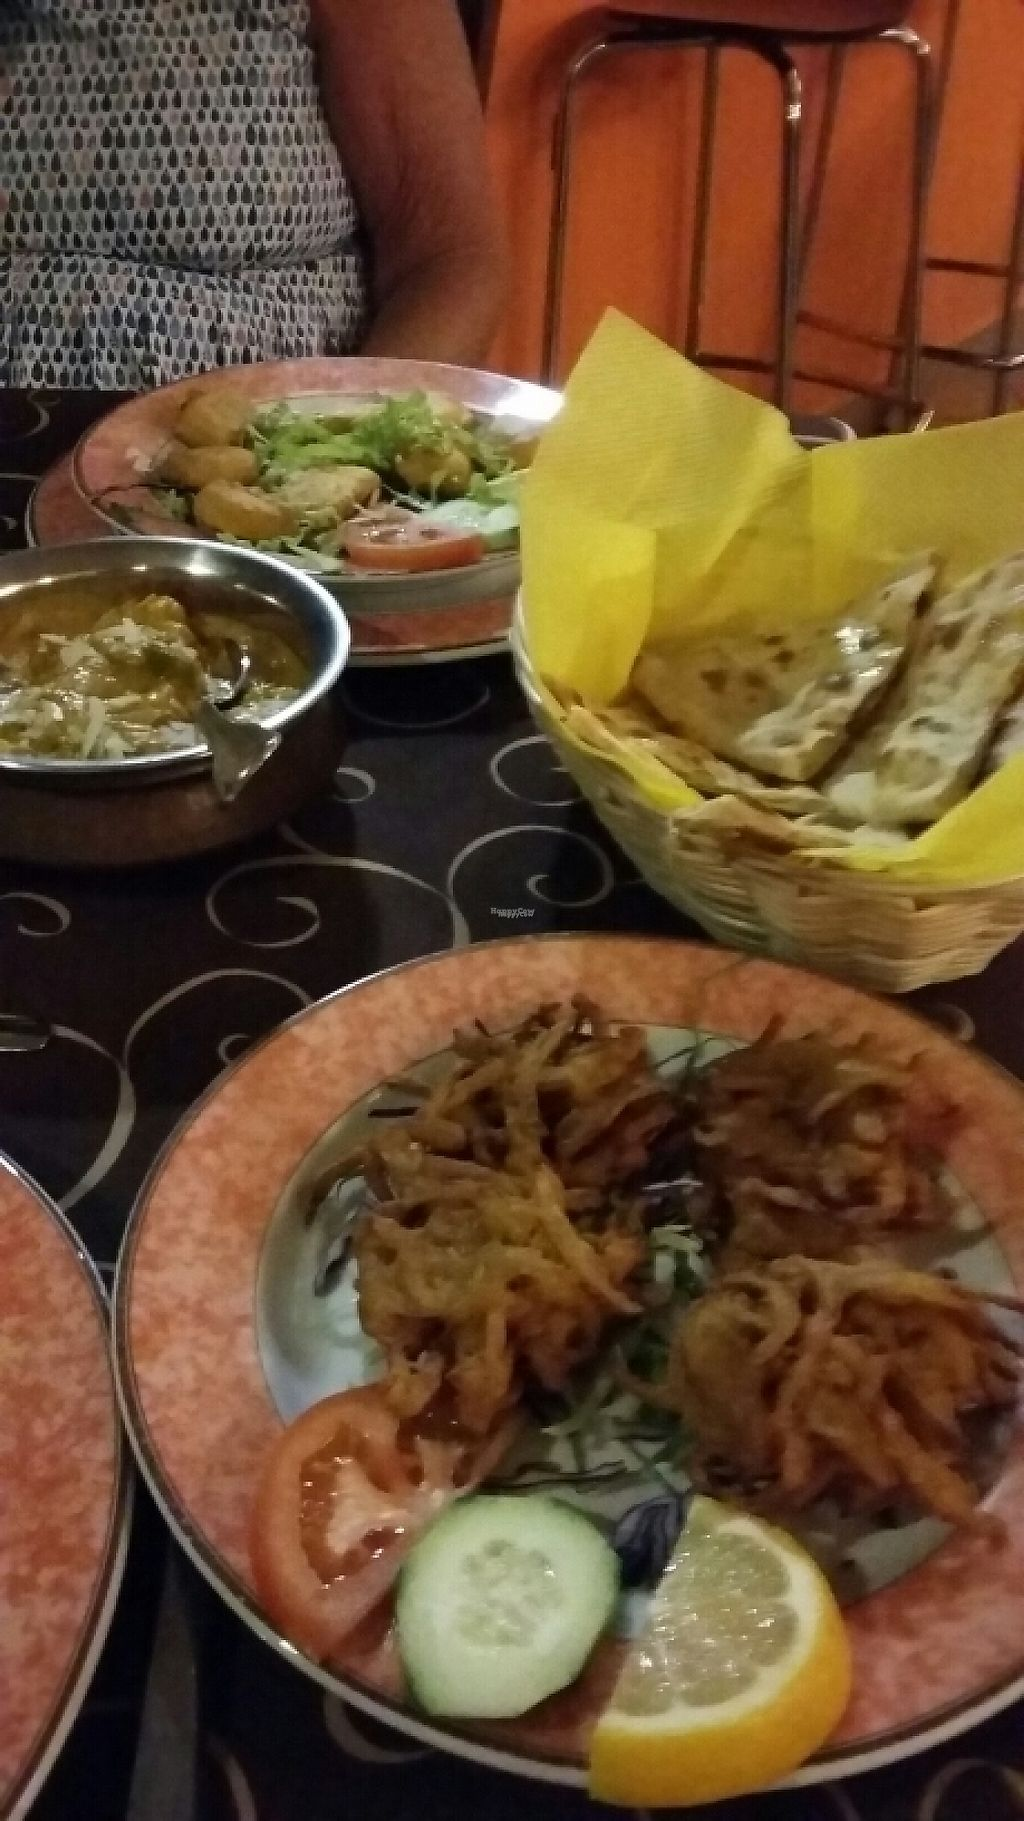 """Photo of Sabor da India  by <a href=""""/members/profile/Tigger29"""">Tigger29</a> <br/>Wow <br/> March 26, 2017  - <a href='/contact/abuse/image/45854/241554'>Report</a>"""